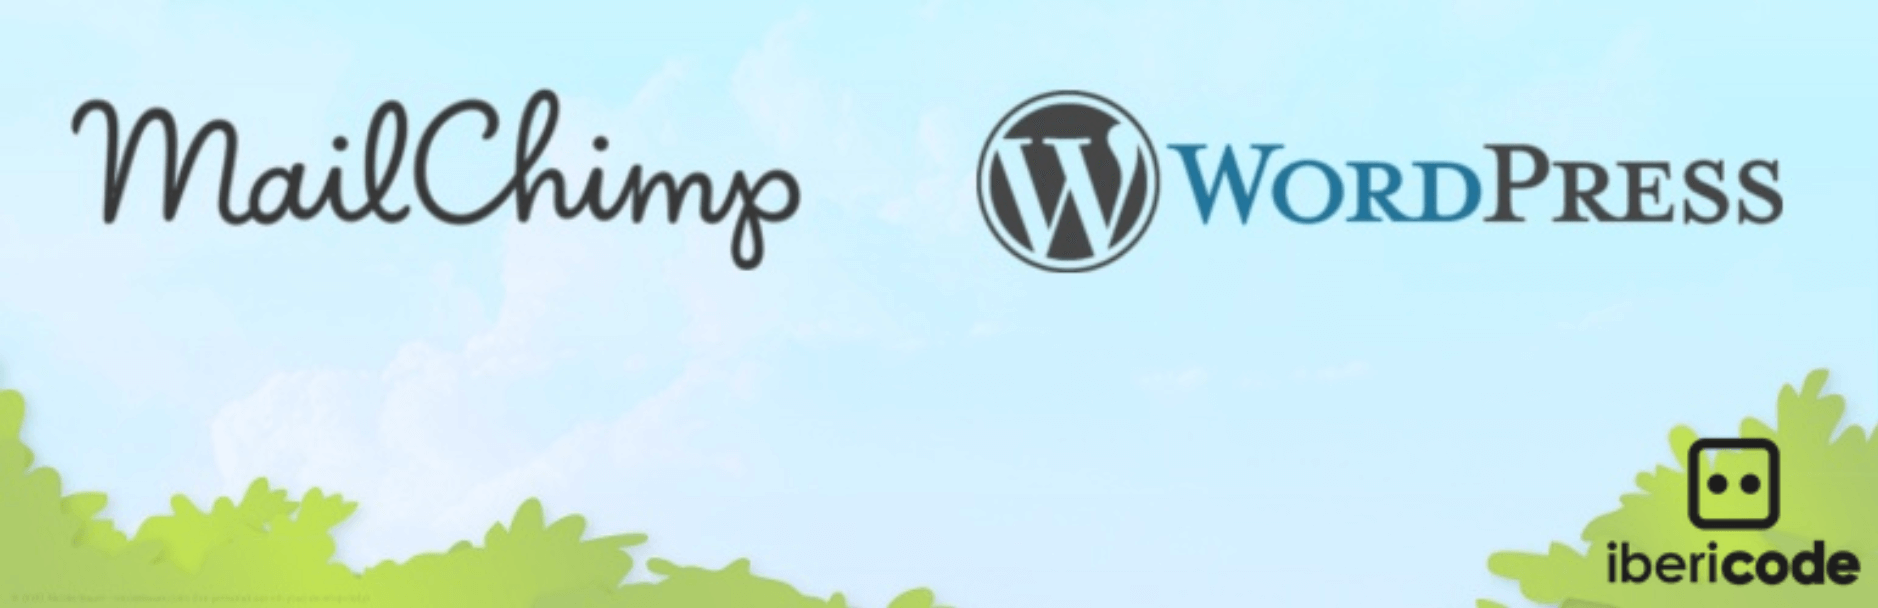 The MailChimp for WordPress plugin.